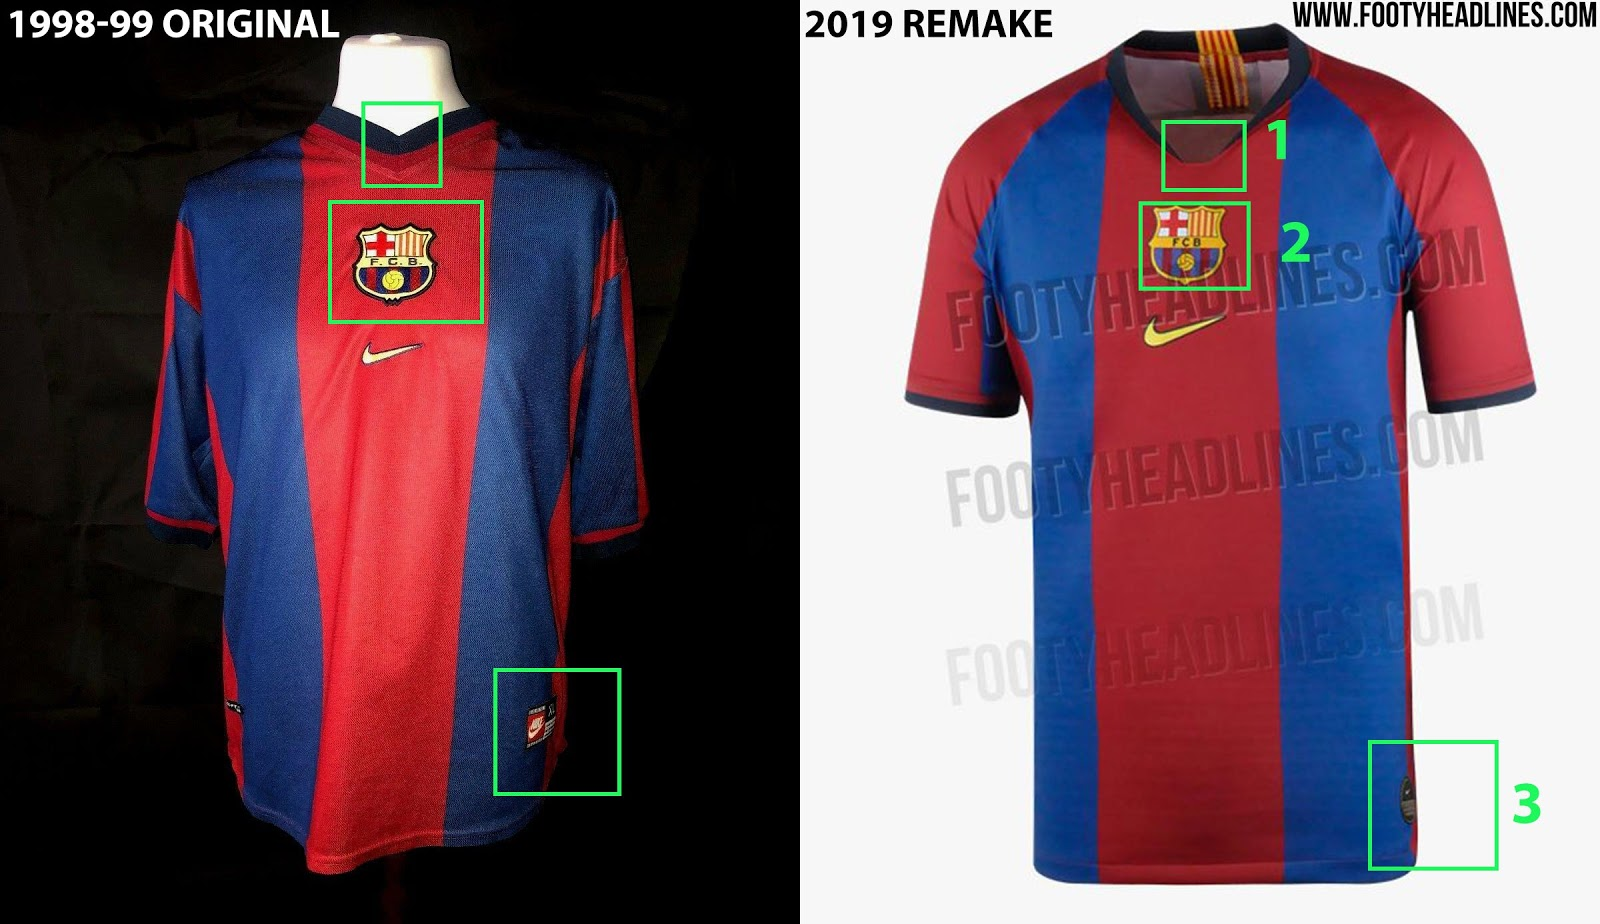 new concept 5db19 fbb25 Nike FC Barcelona 1998-99 vs 2019 Remake 'El Clásico' Kit